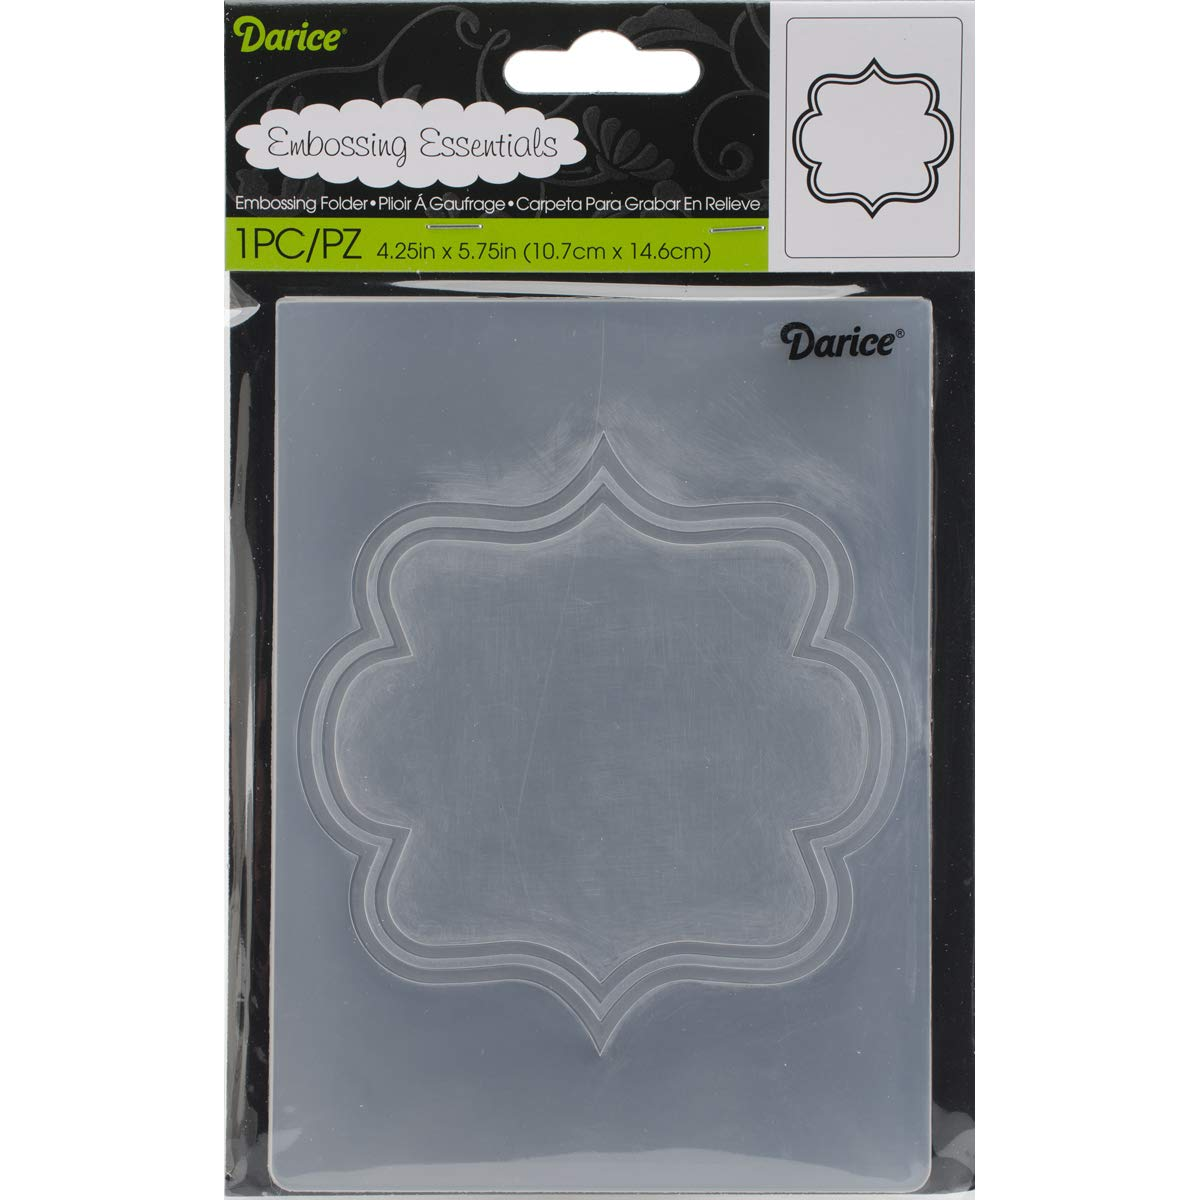 Embossing Folder Square Border 4.25 X 5.75 Inches (3 Pack)